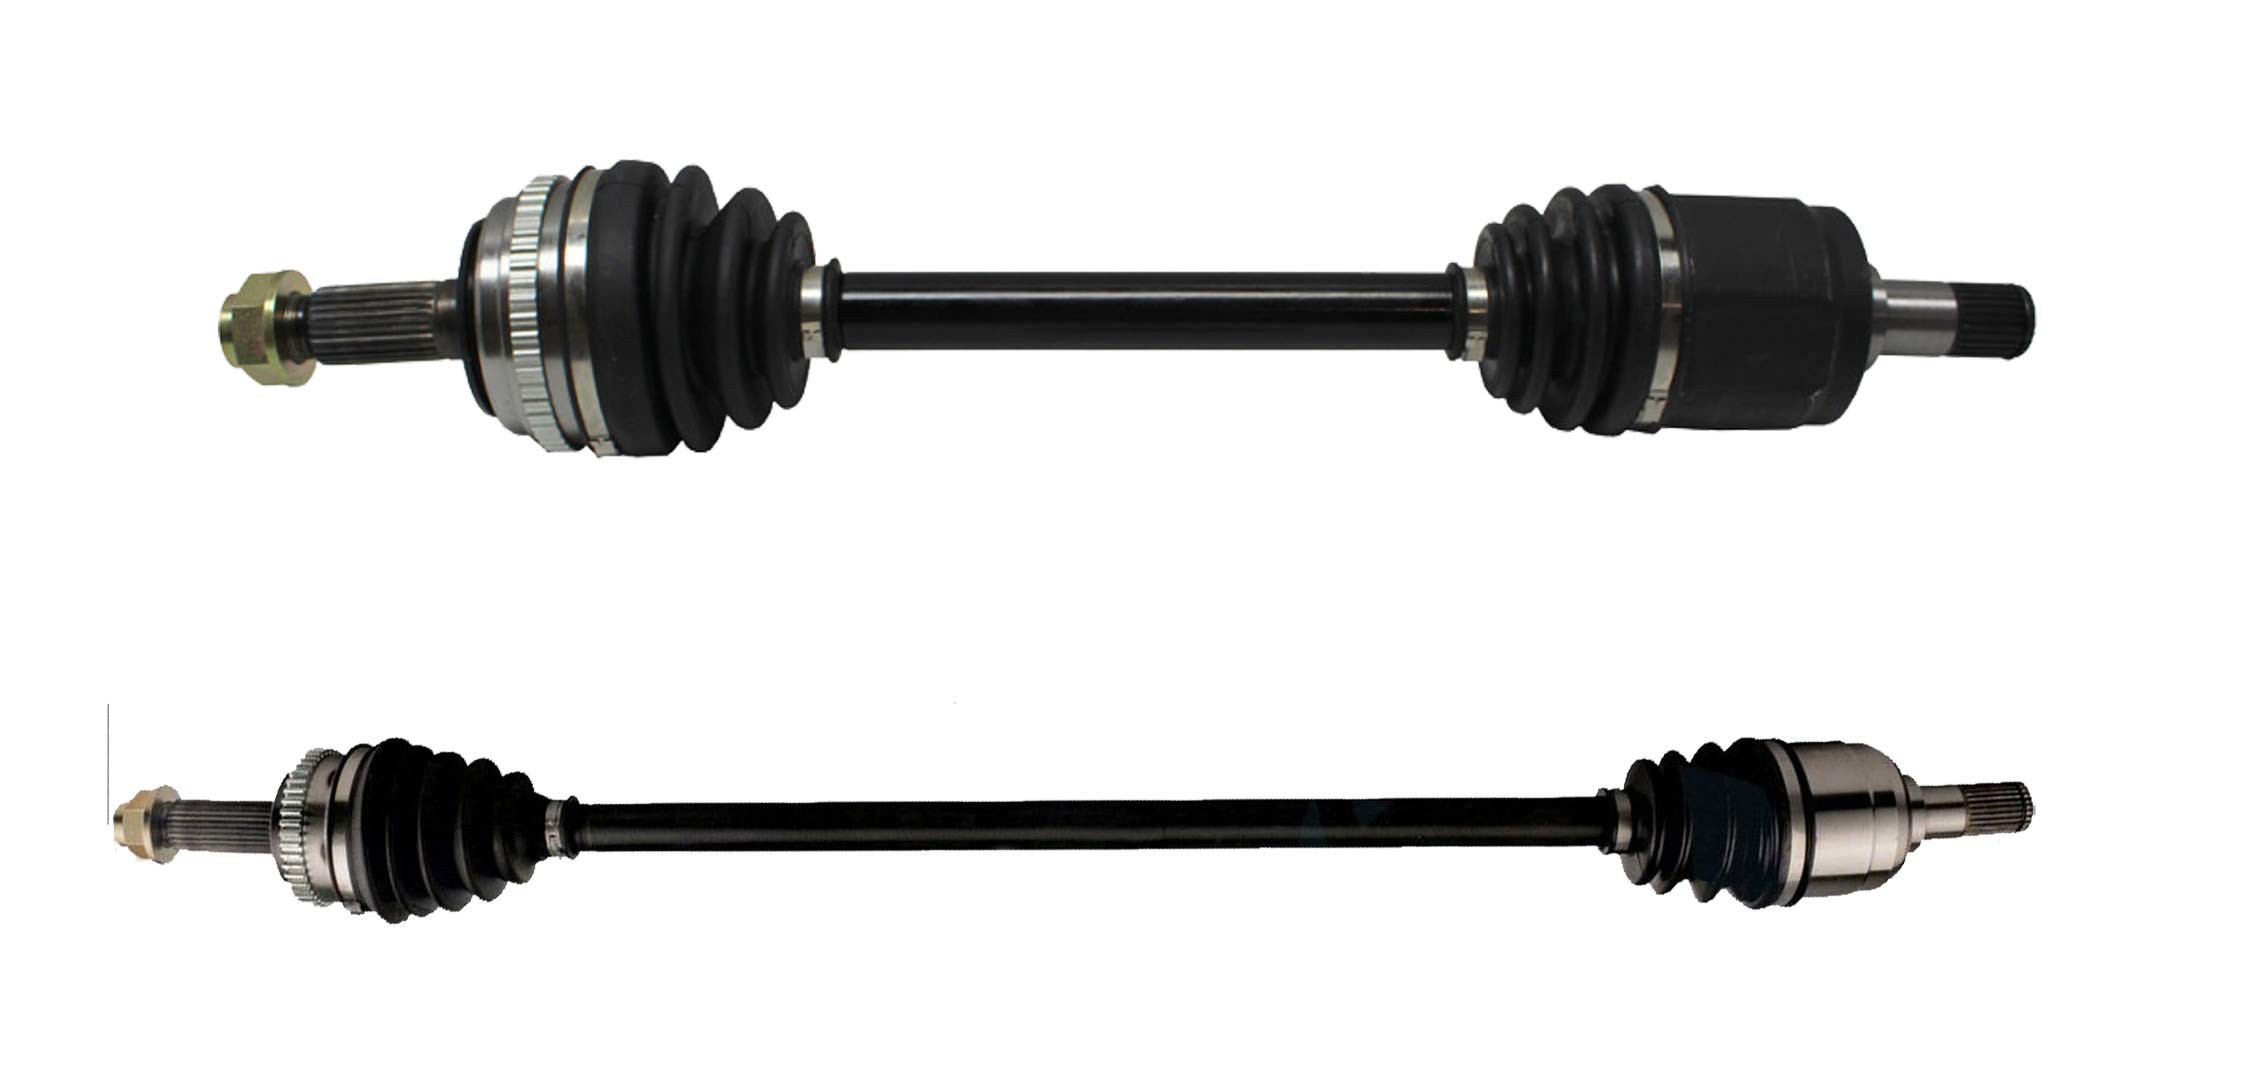 Detroit Axle - Pair (2) Complete Front CV Axle Drive Shafts Left and Right Side for 1998 1999 2000 2001 2002 Honda Accord 2.3L w/Automatic Transmission